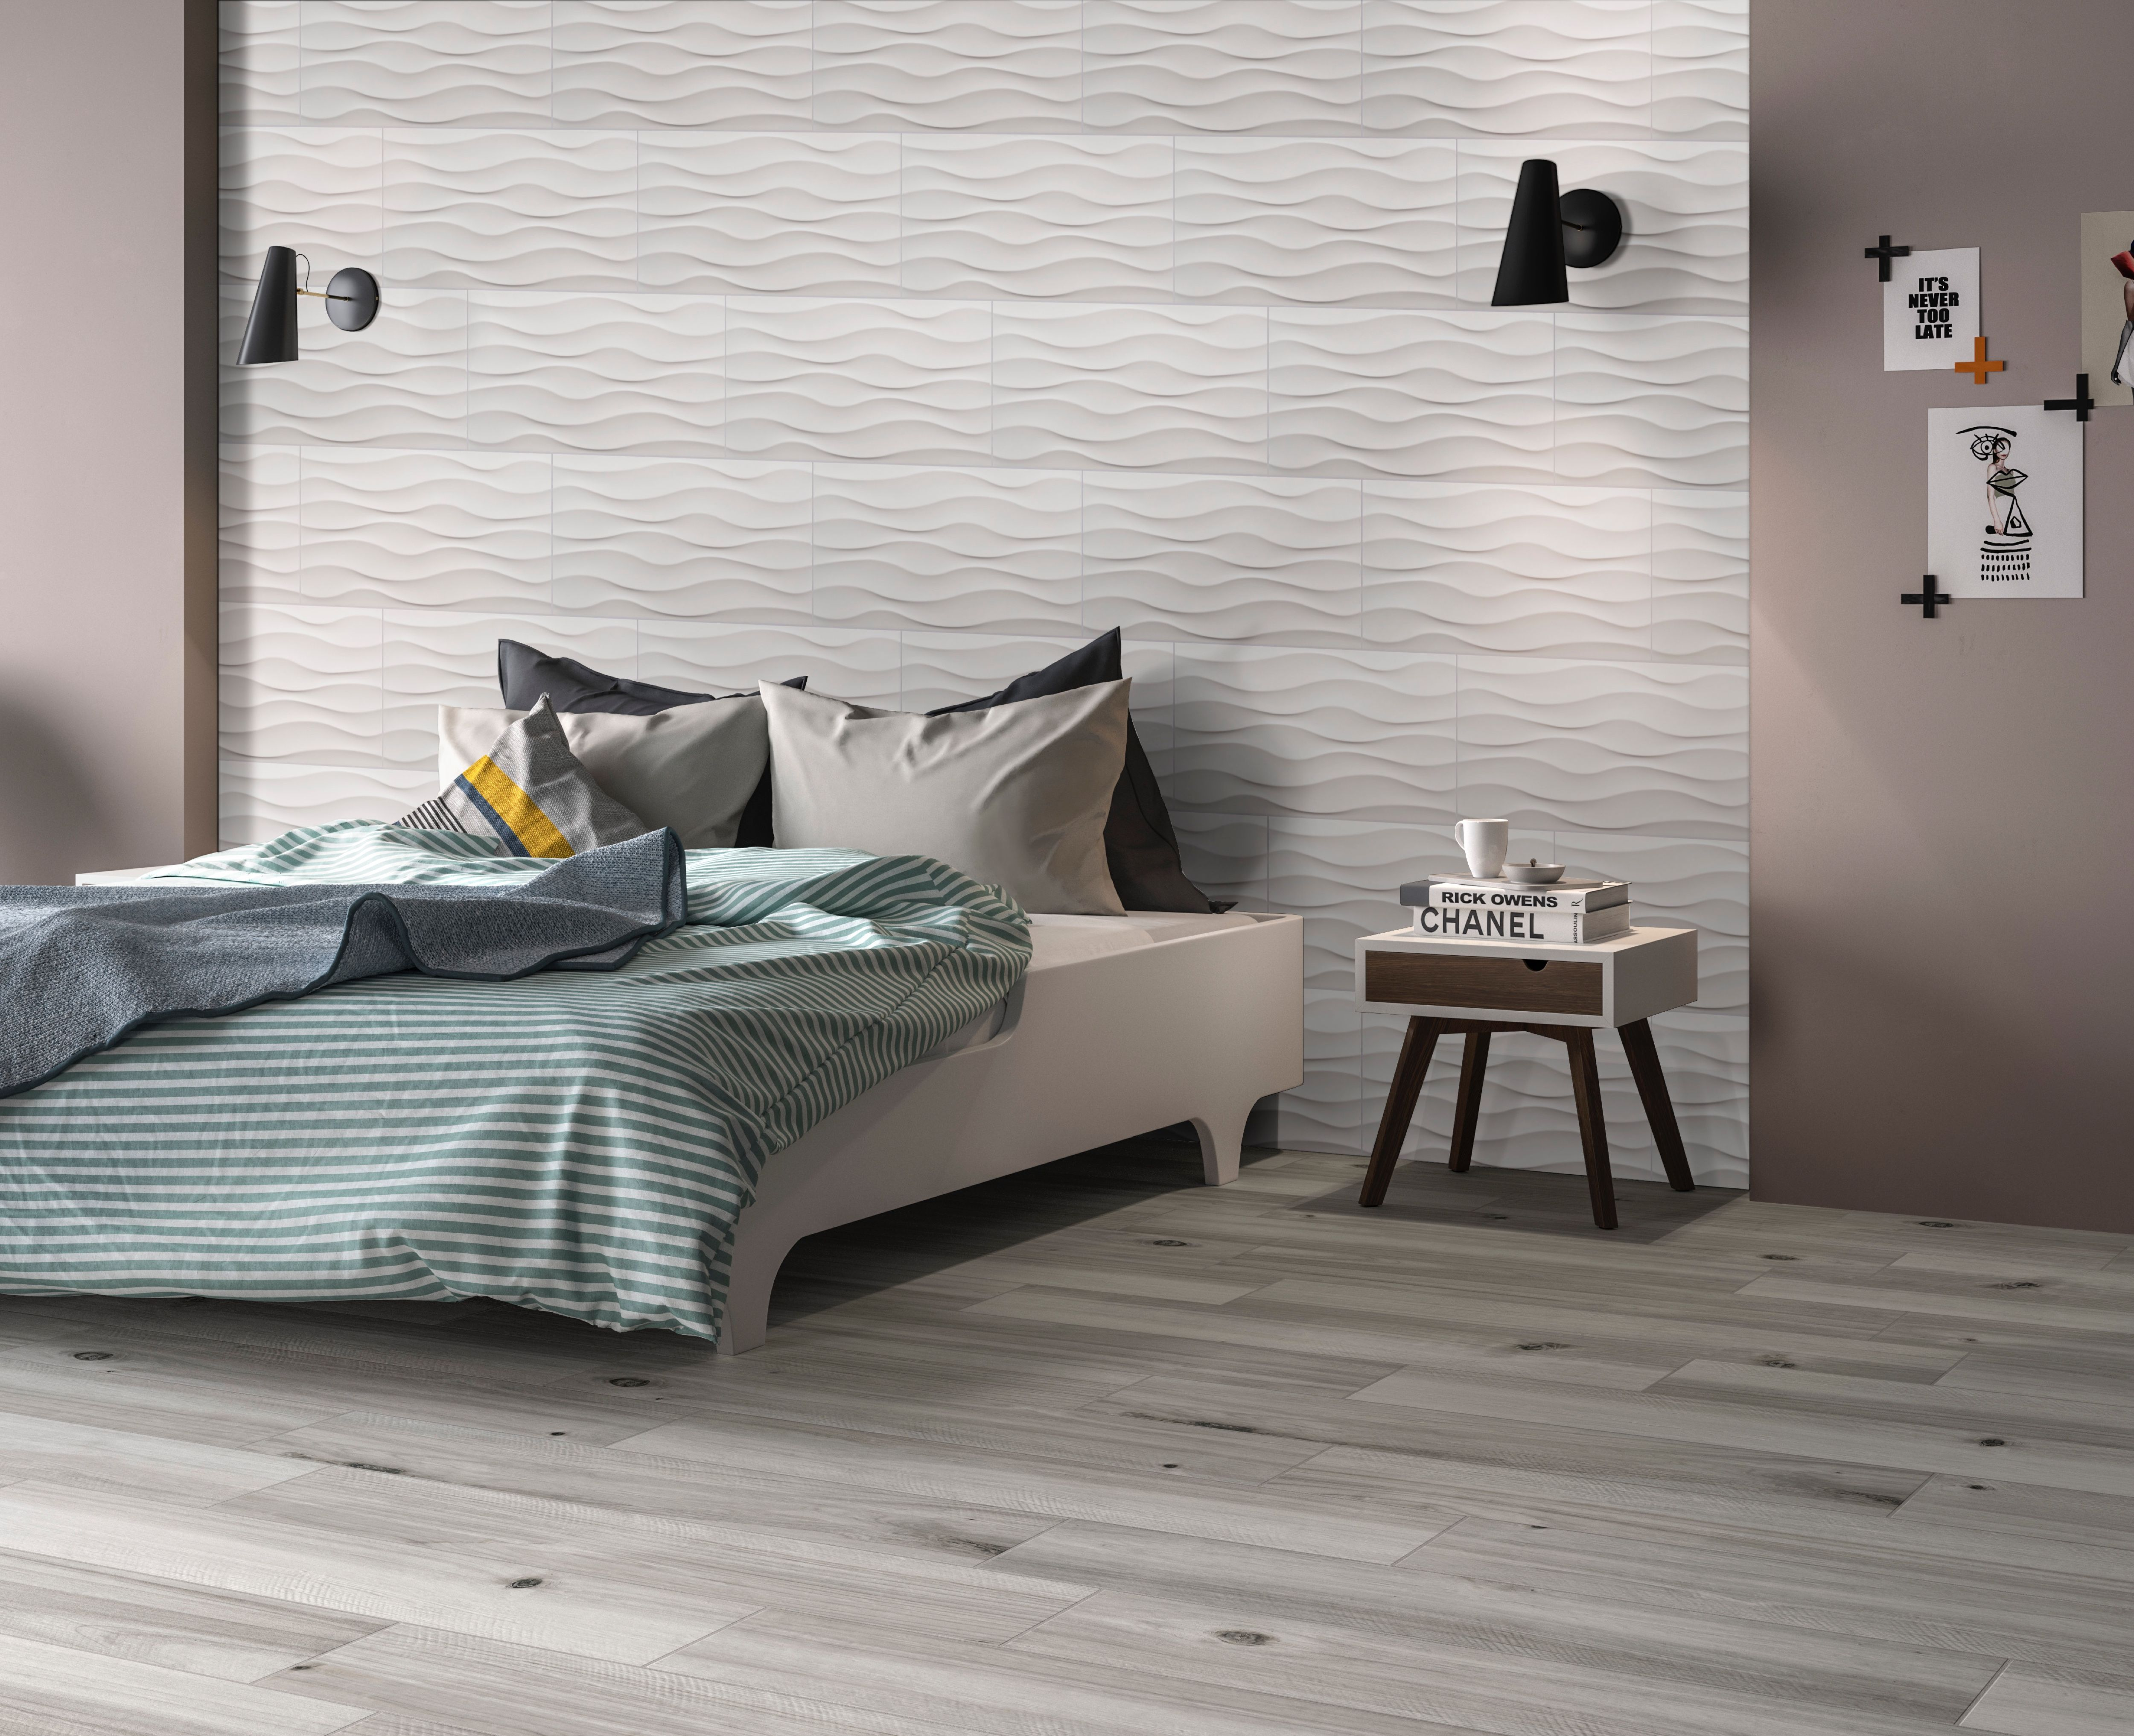 Dymo Wavy White Large Format Ceramic Tile Feature Contemporary Lines In A Glossy Finish These Beautiful And Elegant Textured Walls Elegant Tiles Bedroom Wall